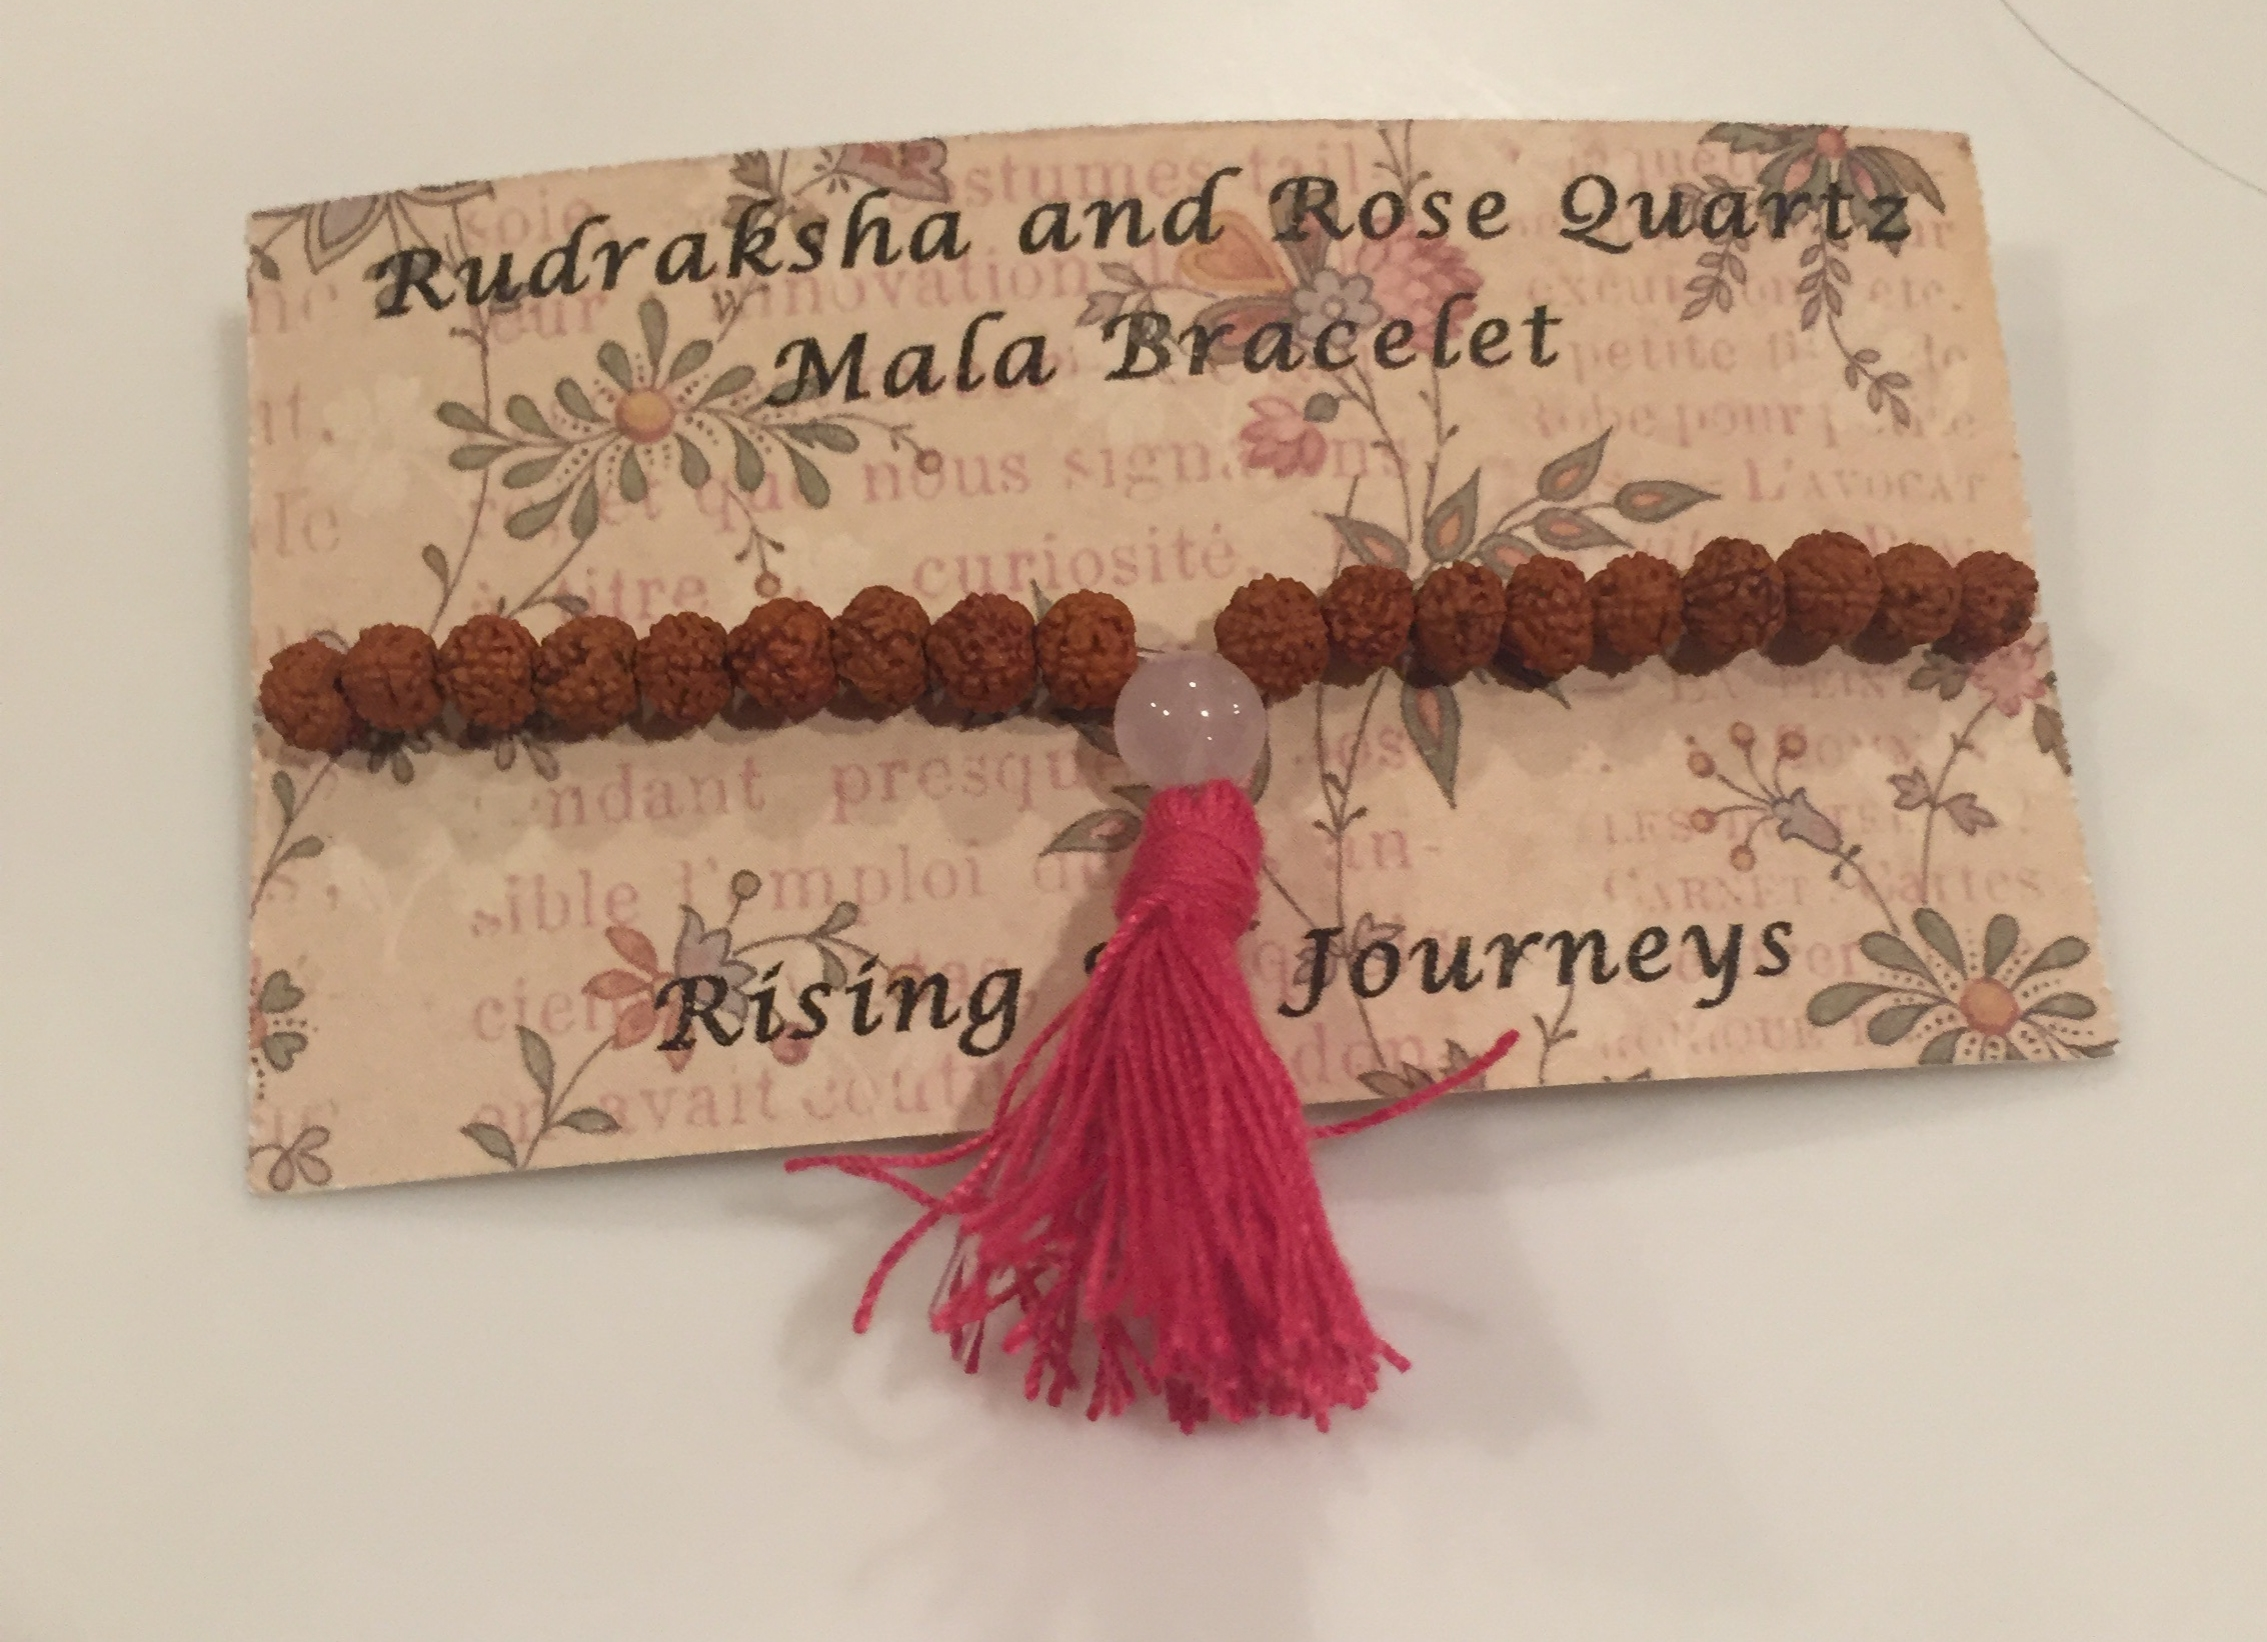 This Rudraksha and rose quartz mala bracelet is currently on my wrist.  It is handmade by Heather using Rudraksha seeds from India and Lakshmi inspired rose quartz.  I love it, and it is a bonus my favorite color is pink :)